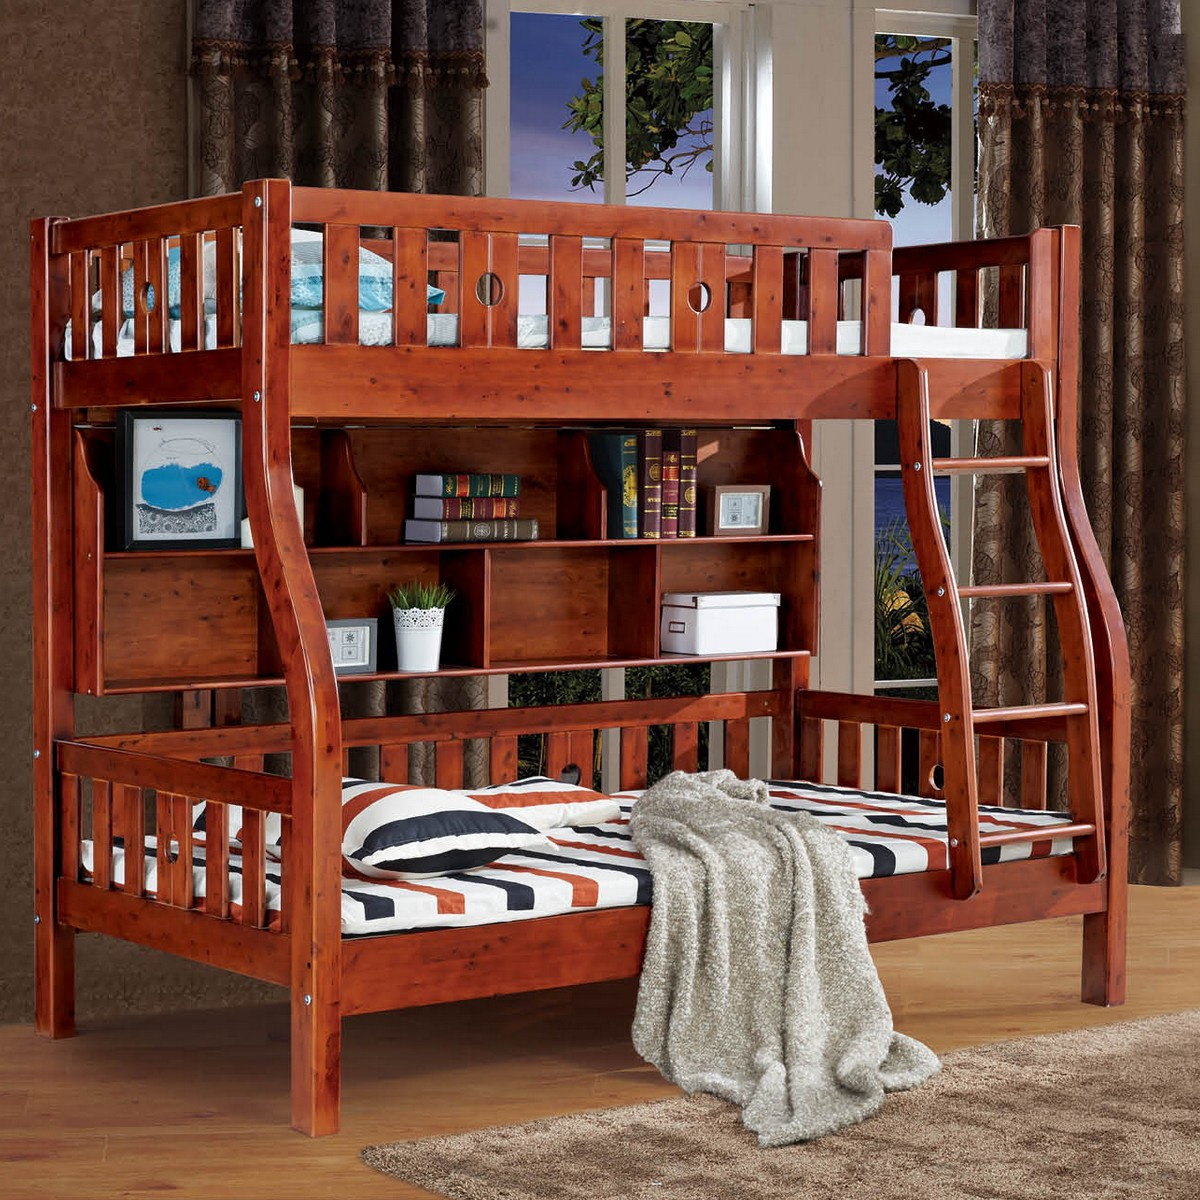 Five packets of home pure cedar wood children step ladder bunk bed picture bed bed bunk bed with bookshelf